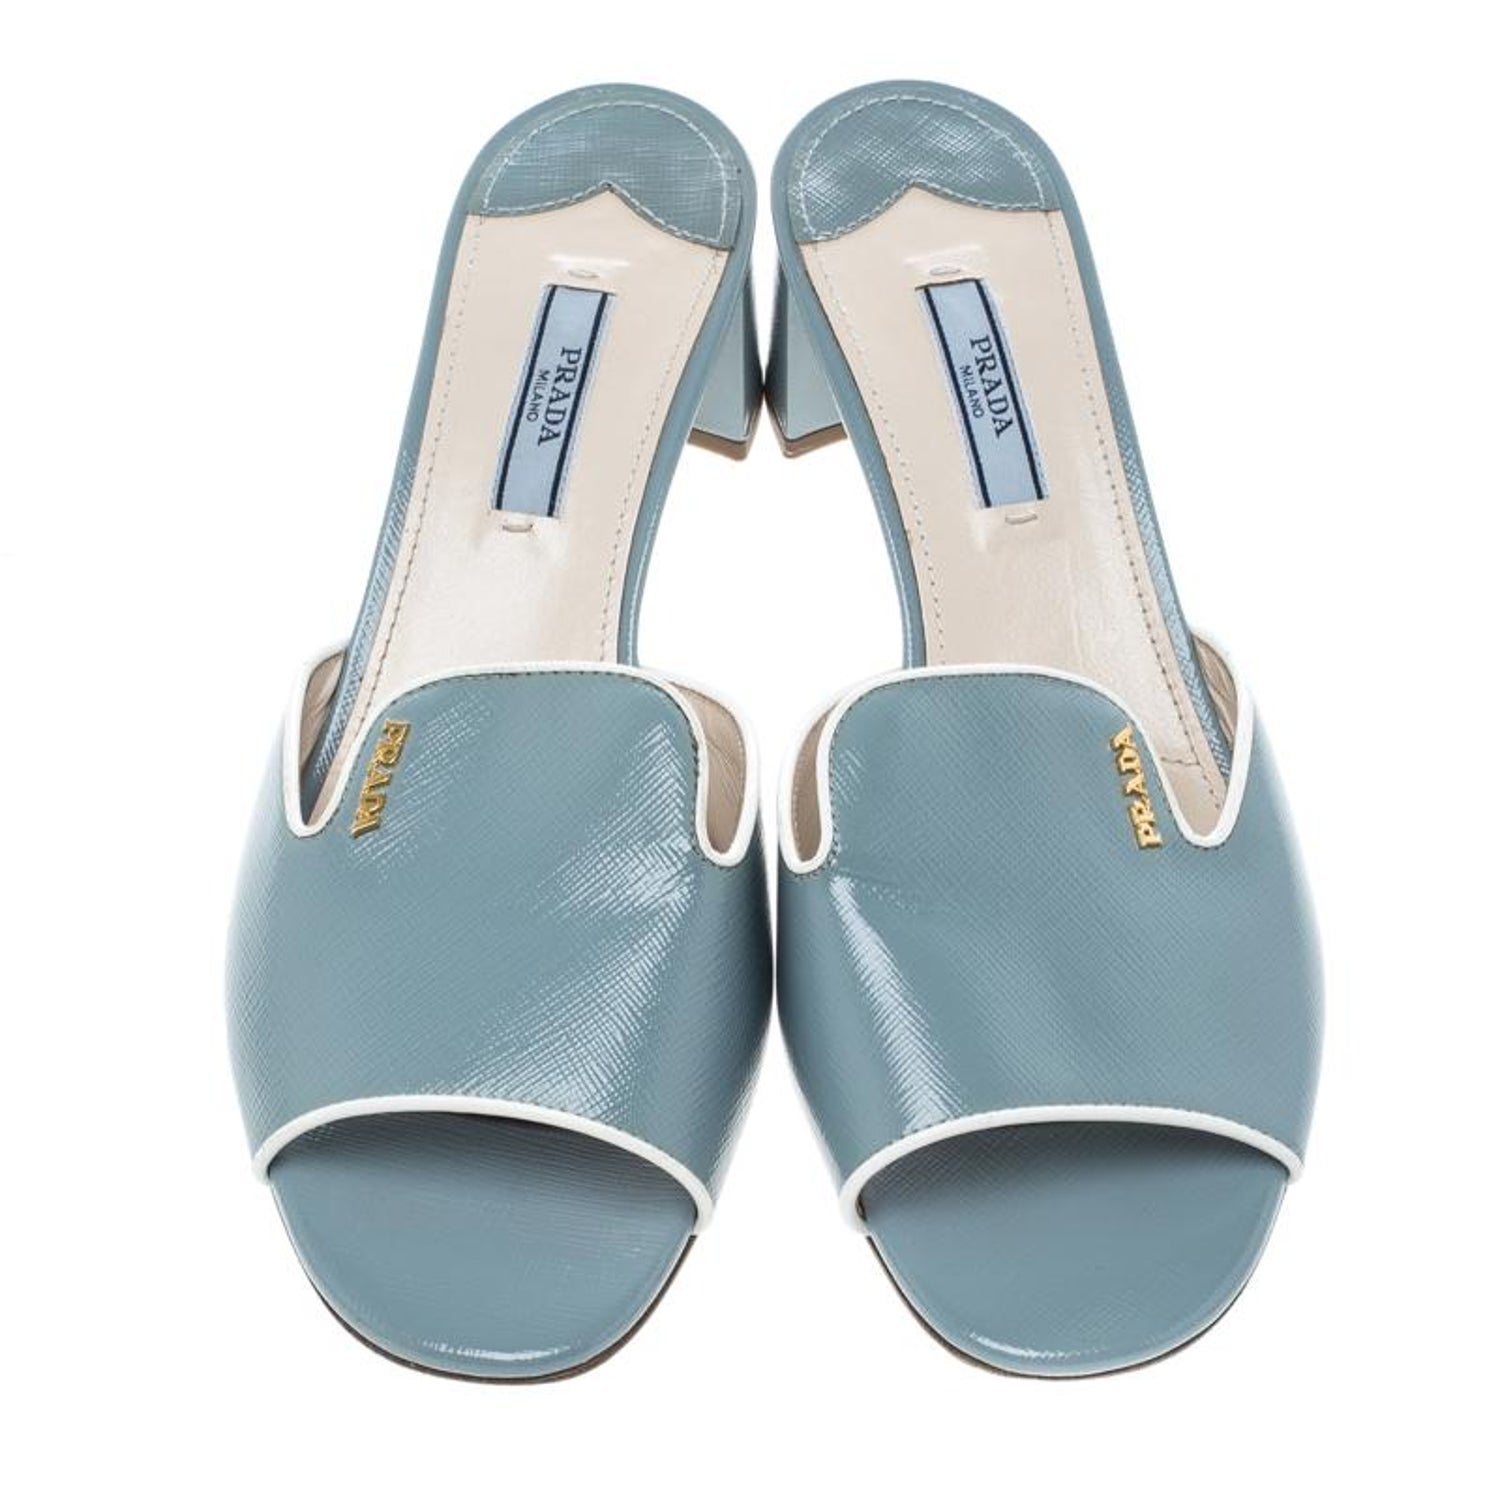 4c851a50c6d Prada Powder Blue Patent Saffiano Leather Block Heel Slides Size 39 For  Sale at 1stdibs